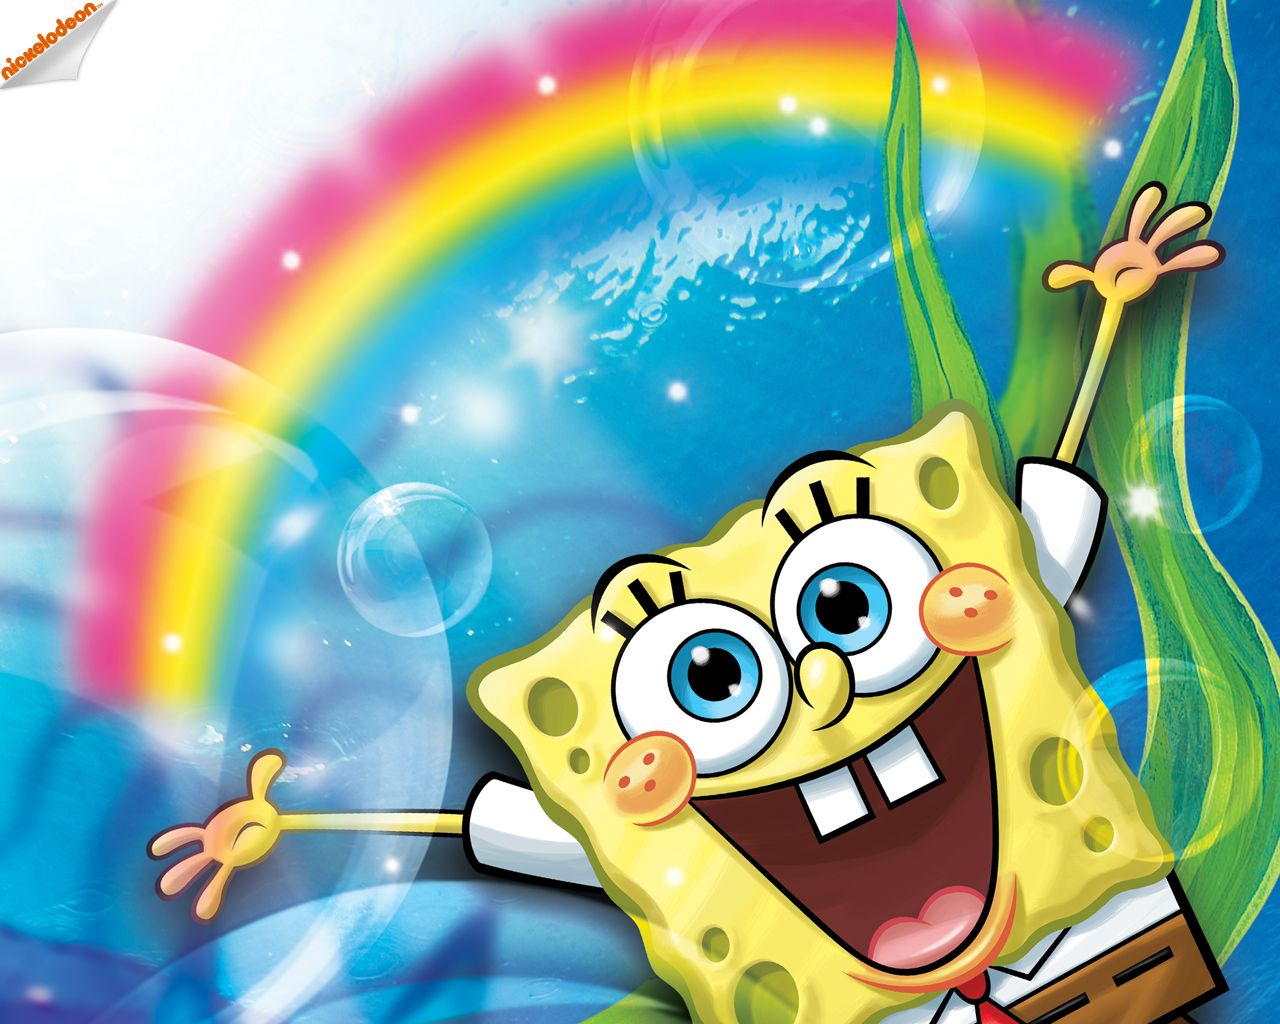 Spongebob S Age Spongebob Wallpaper Spongebob Spongebob Birthday